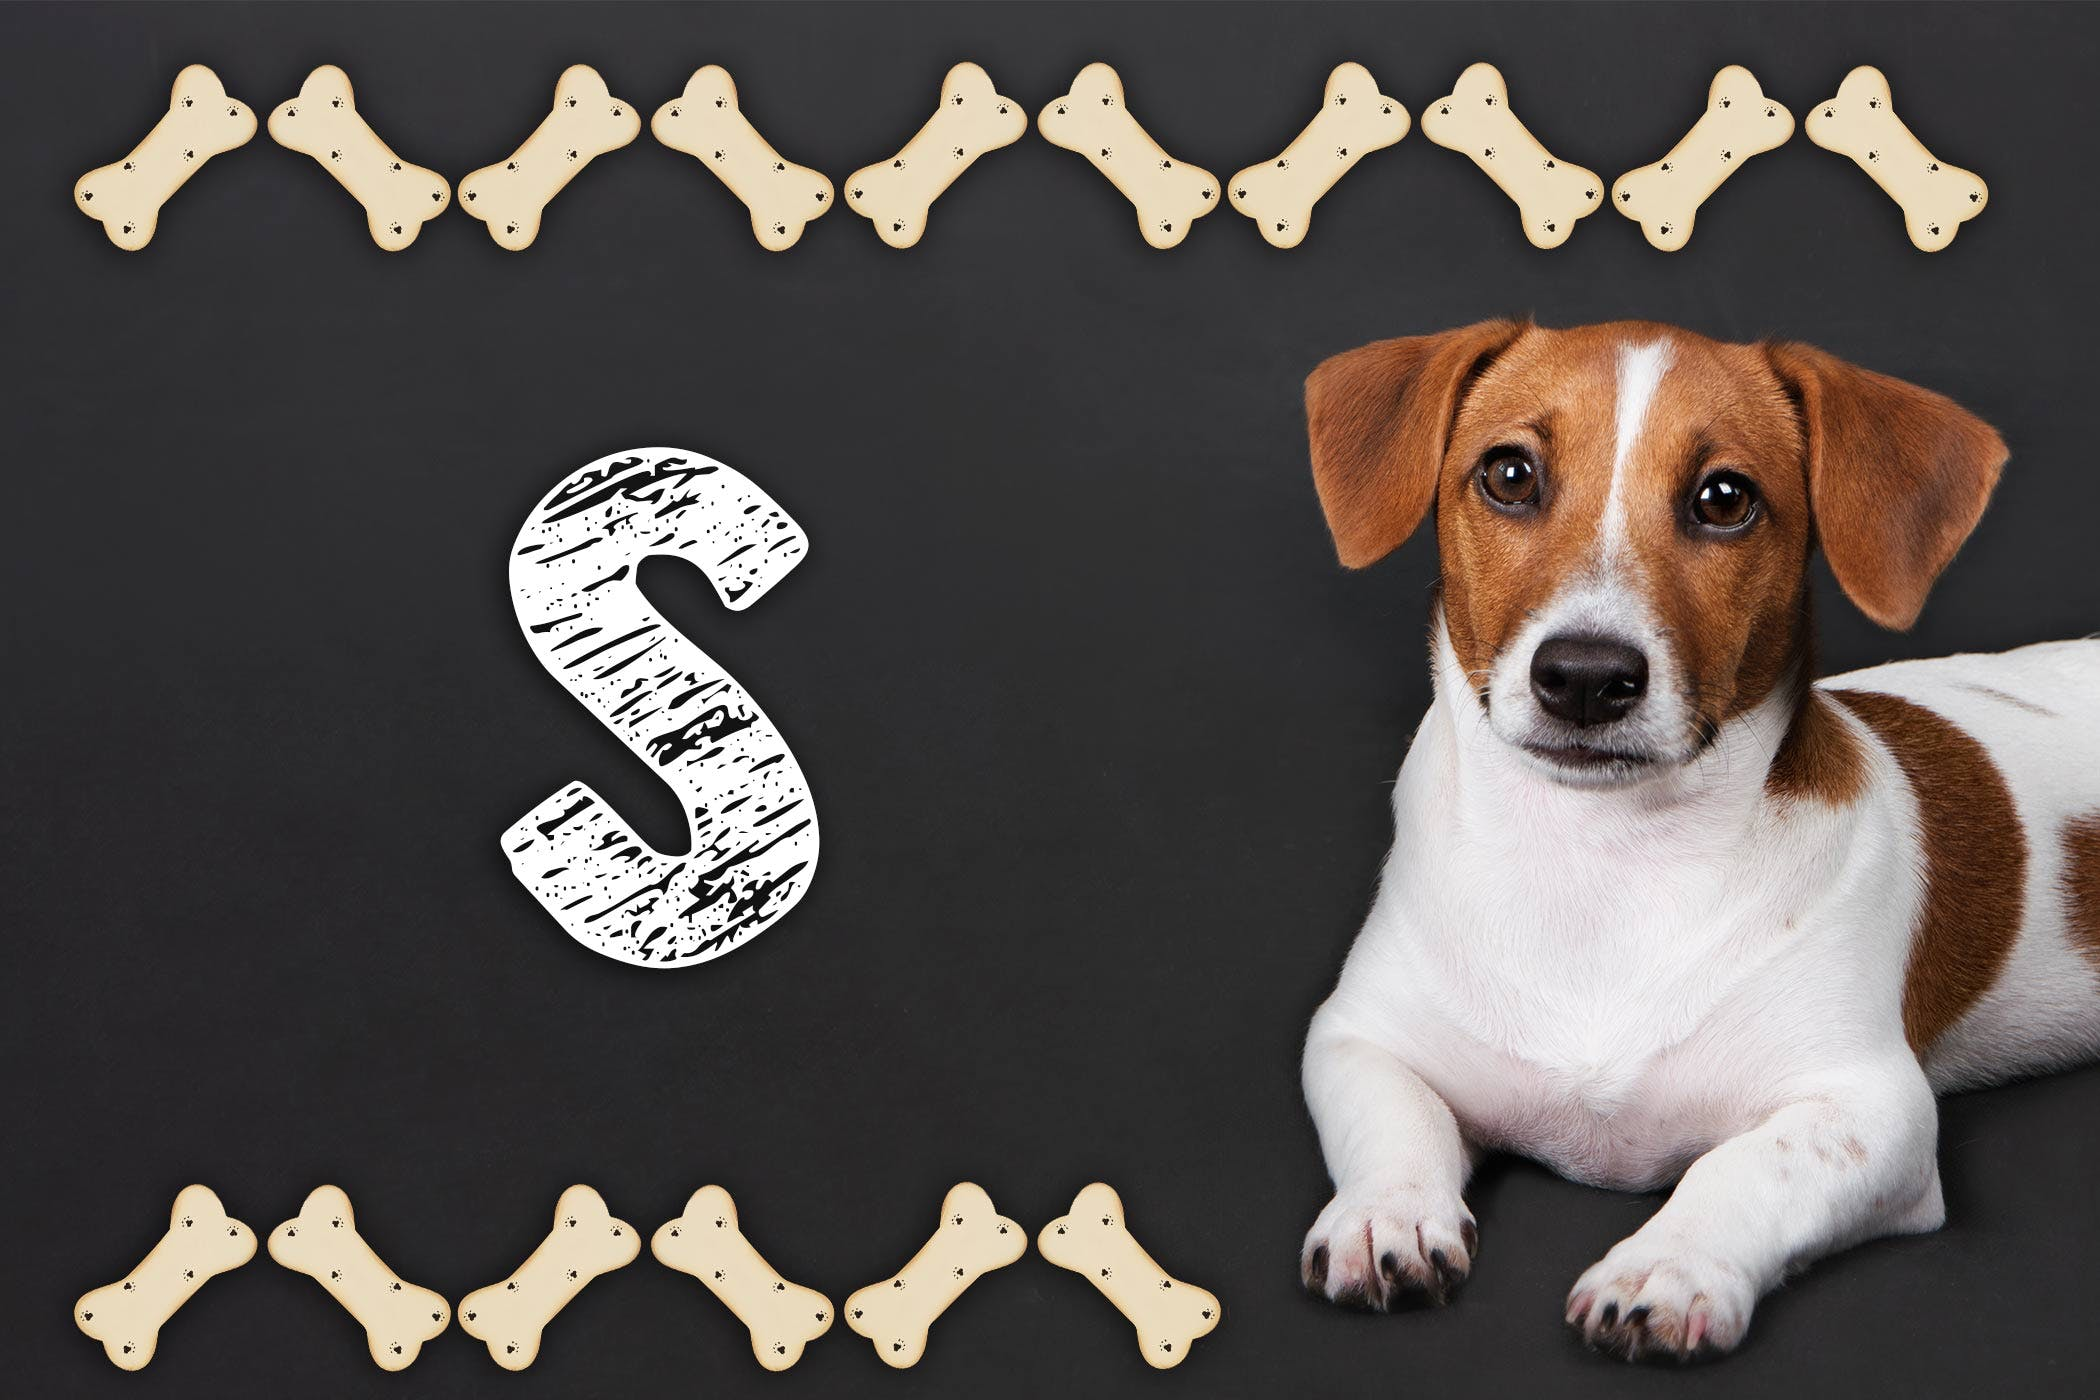 Stephen King Inspired Dog Names | Popular Male and Female